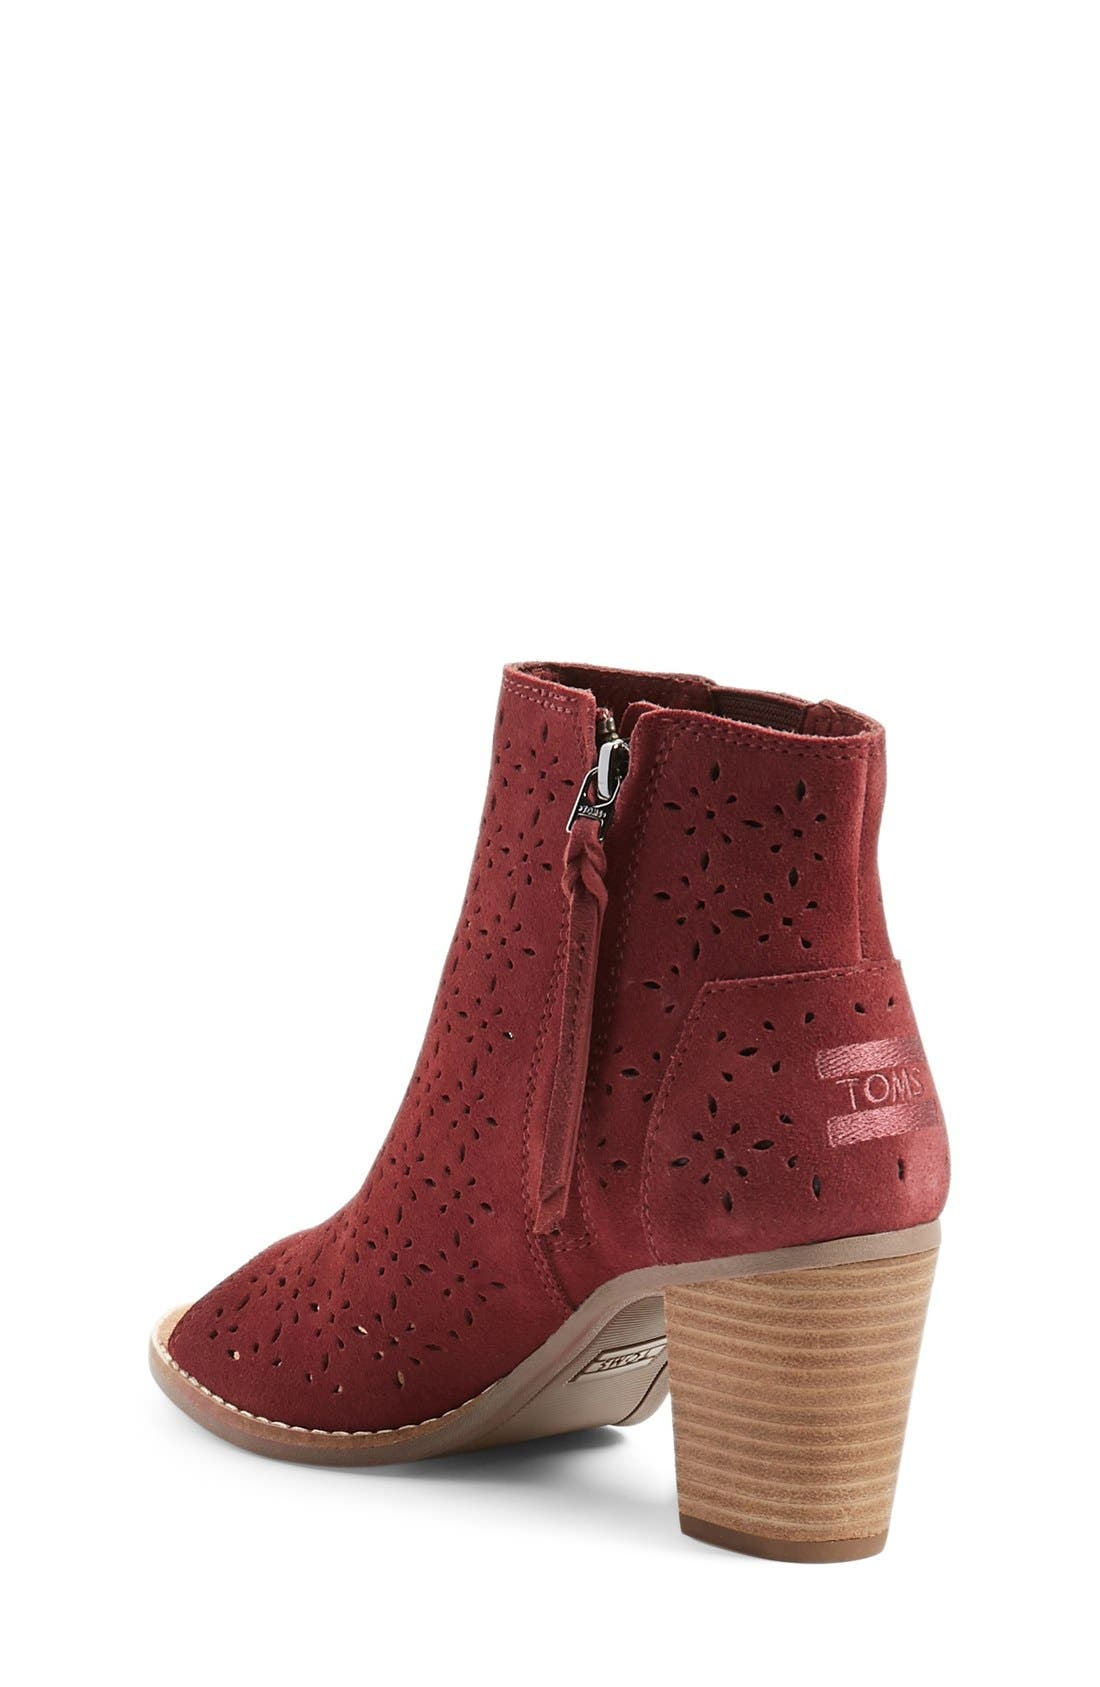 Alternate Image 2  - TOMS 'Majorca' Peep Toe Bootie (Women)